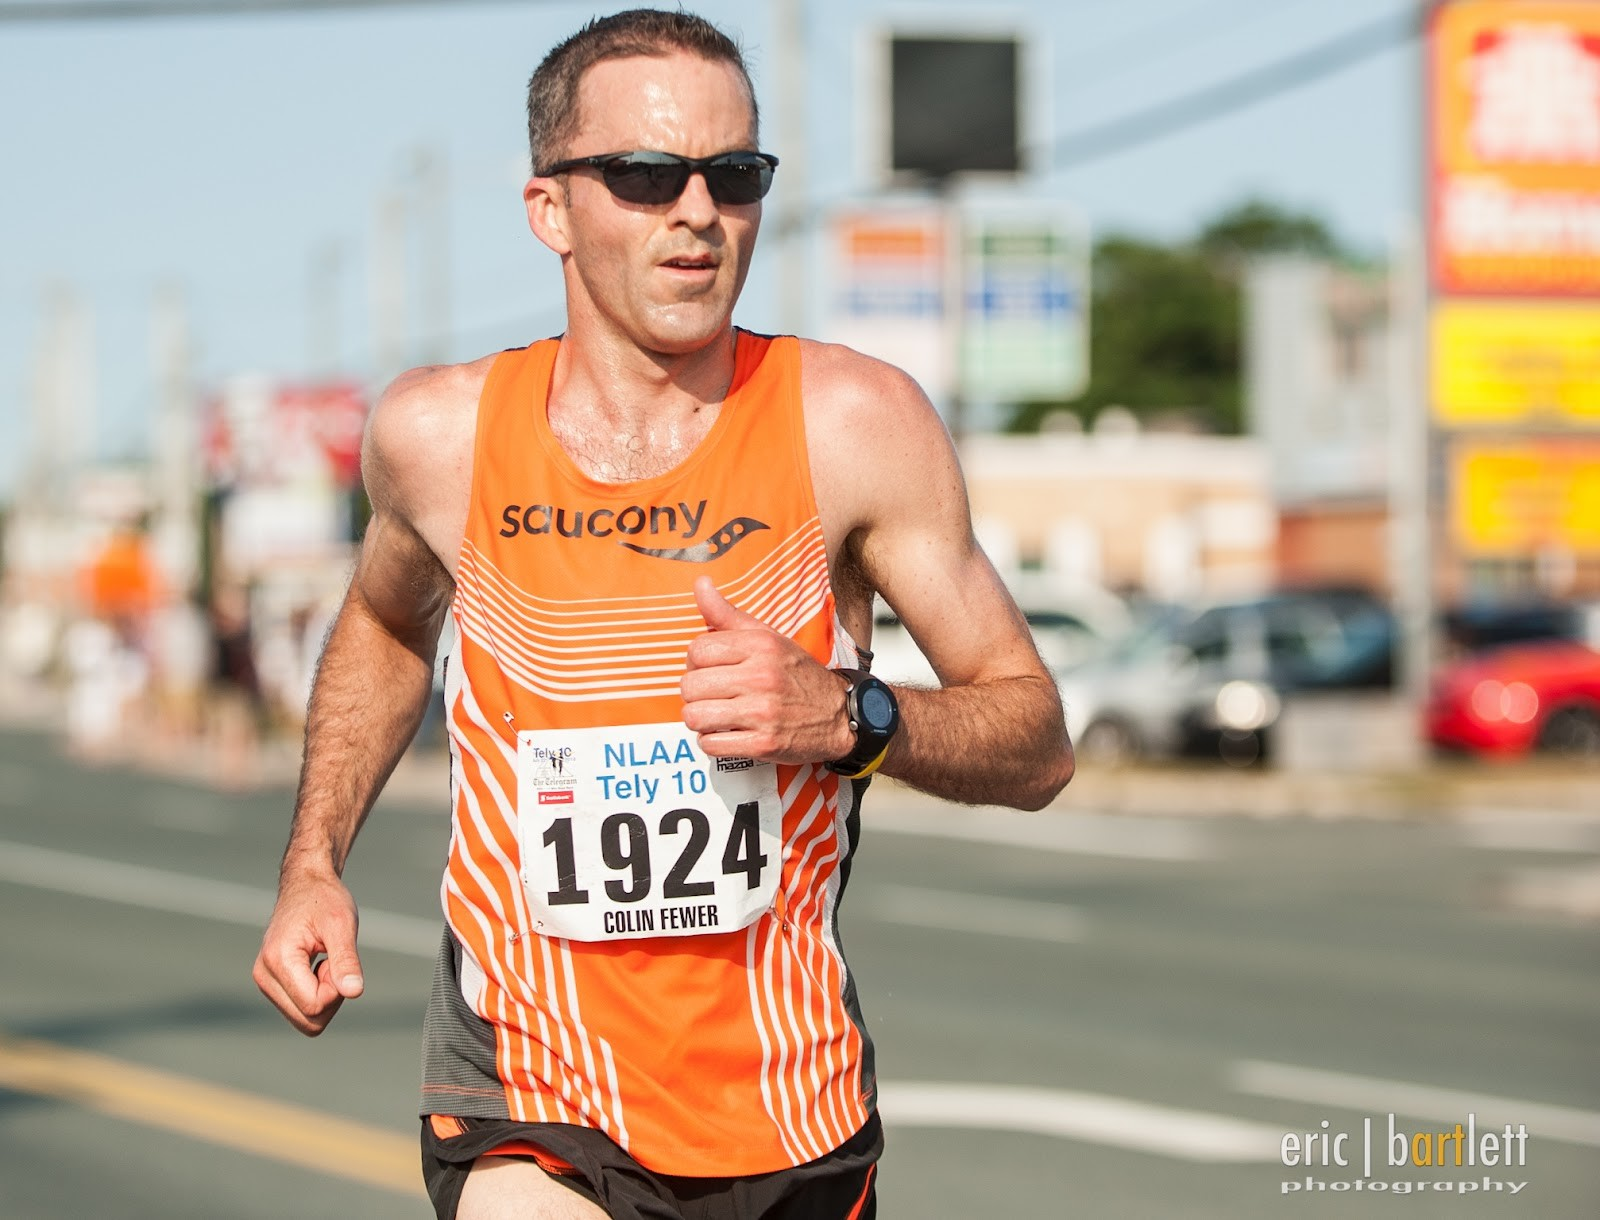 41-year-old Colin Fewer still feel he has not run his best Tely 10